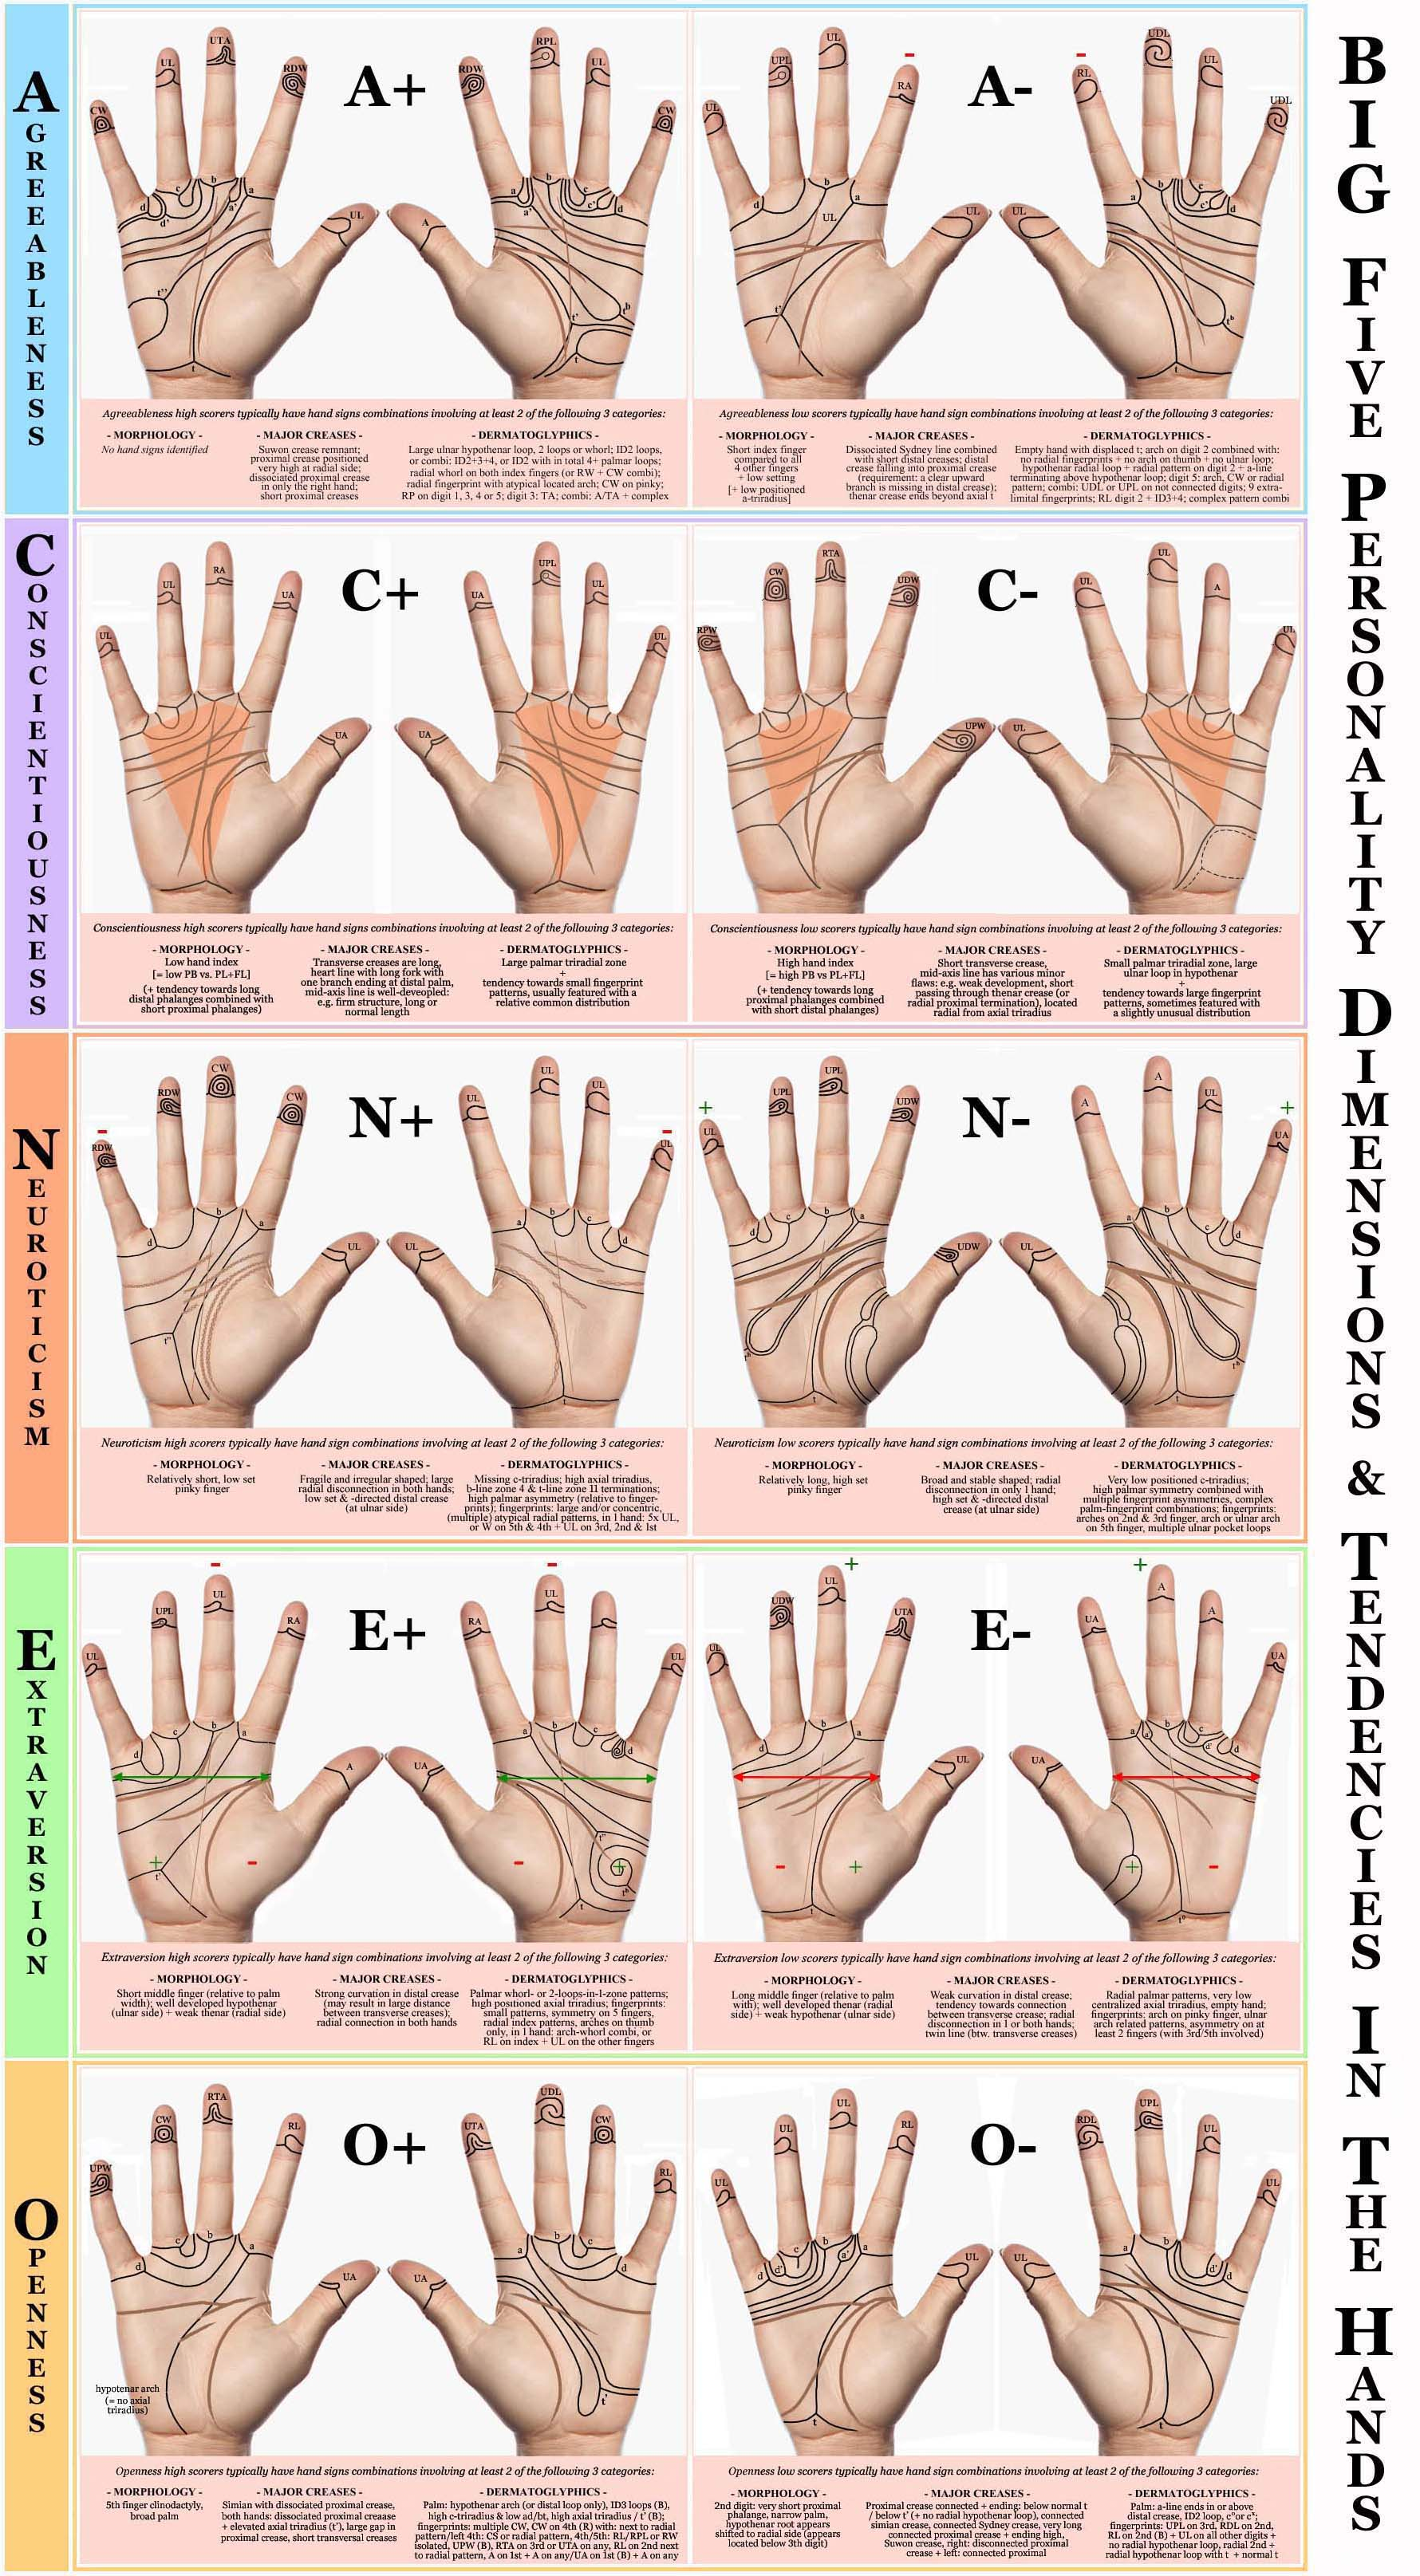 Hand charts: hand sign tendencies in the Big Five personality dimensions - Conscientiousness, Agreeableness, Extraversion, Openness & Neuroticism!